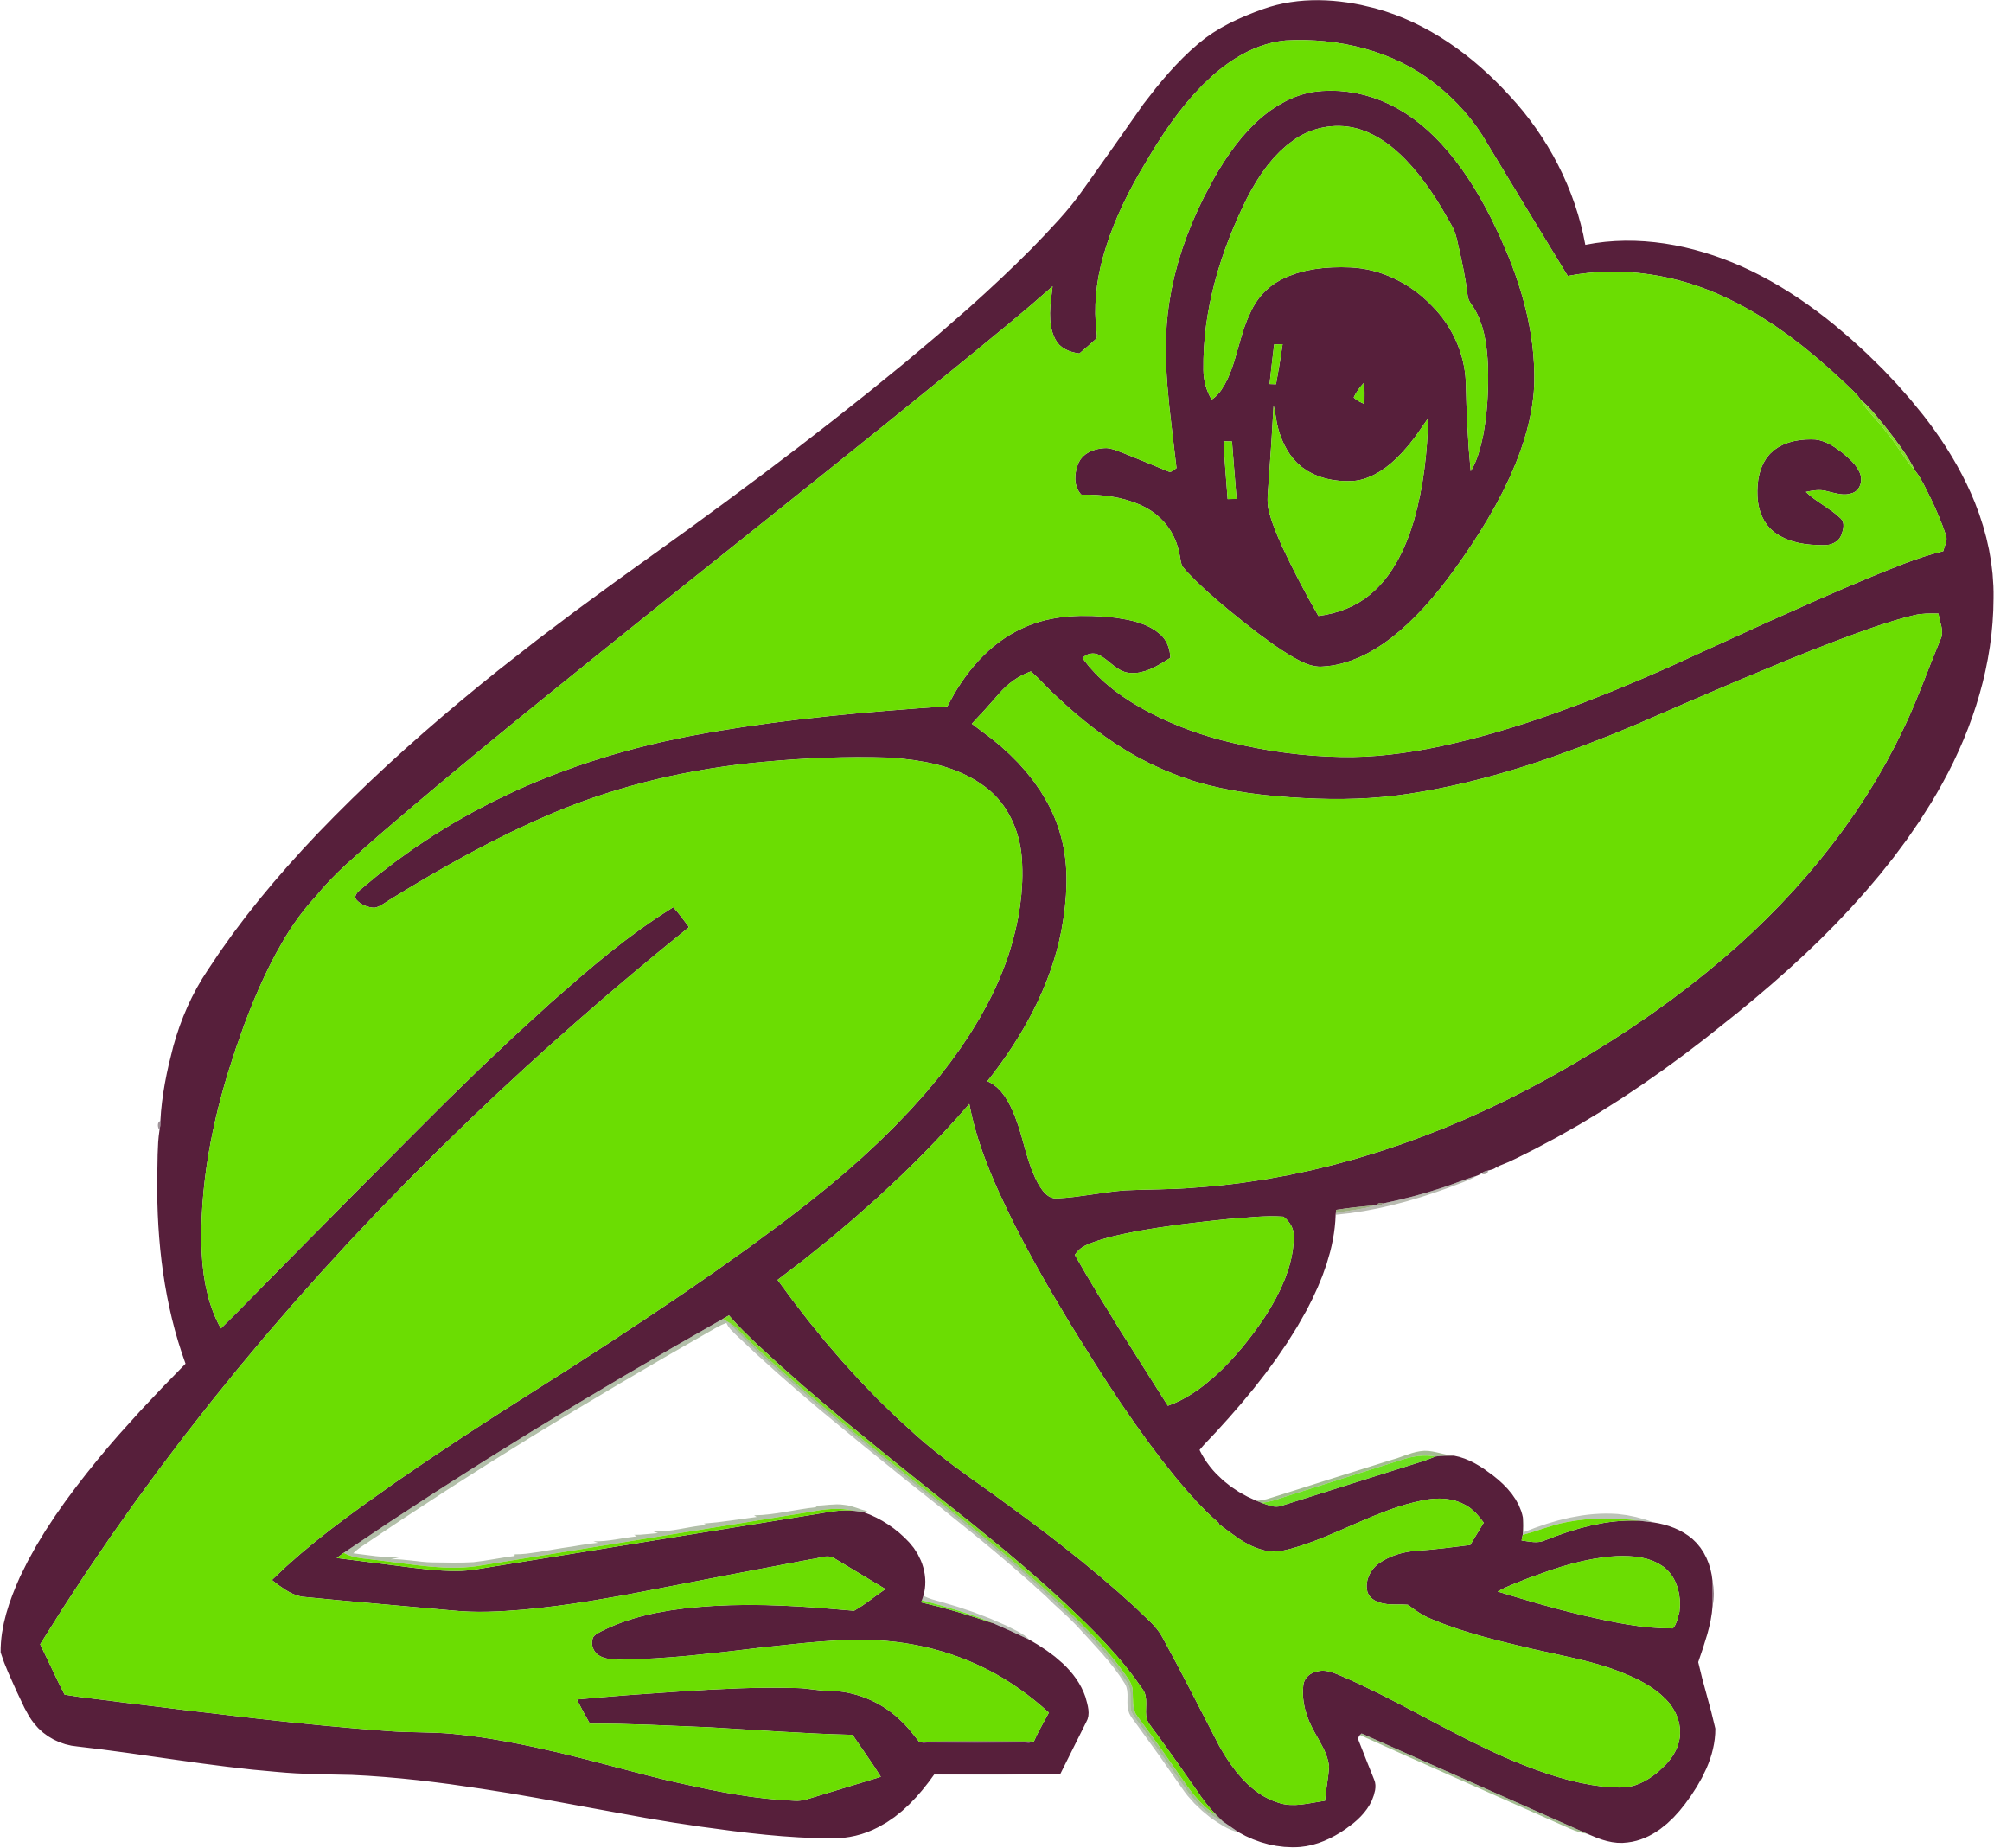 Frog with crown clipart jpg royalty free library Frog Picture Cartoon | Free download best Frog Picture Cartoon on ... jpg royalty free library